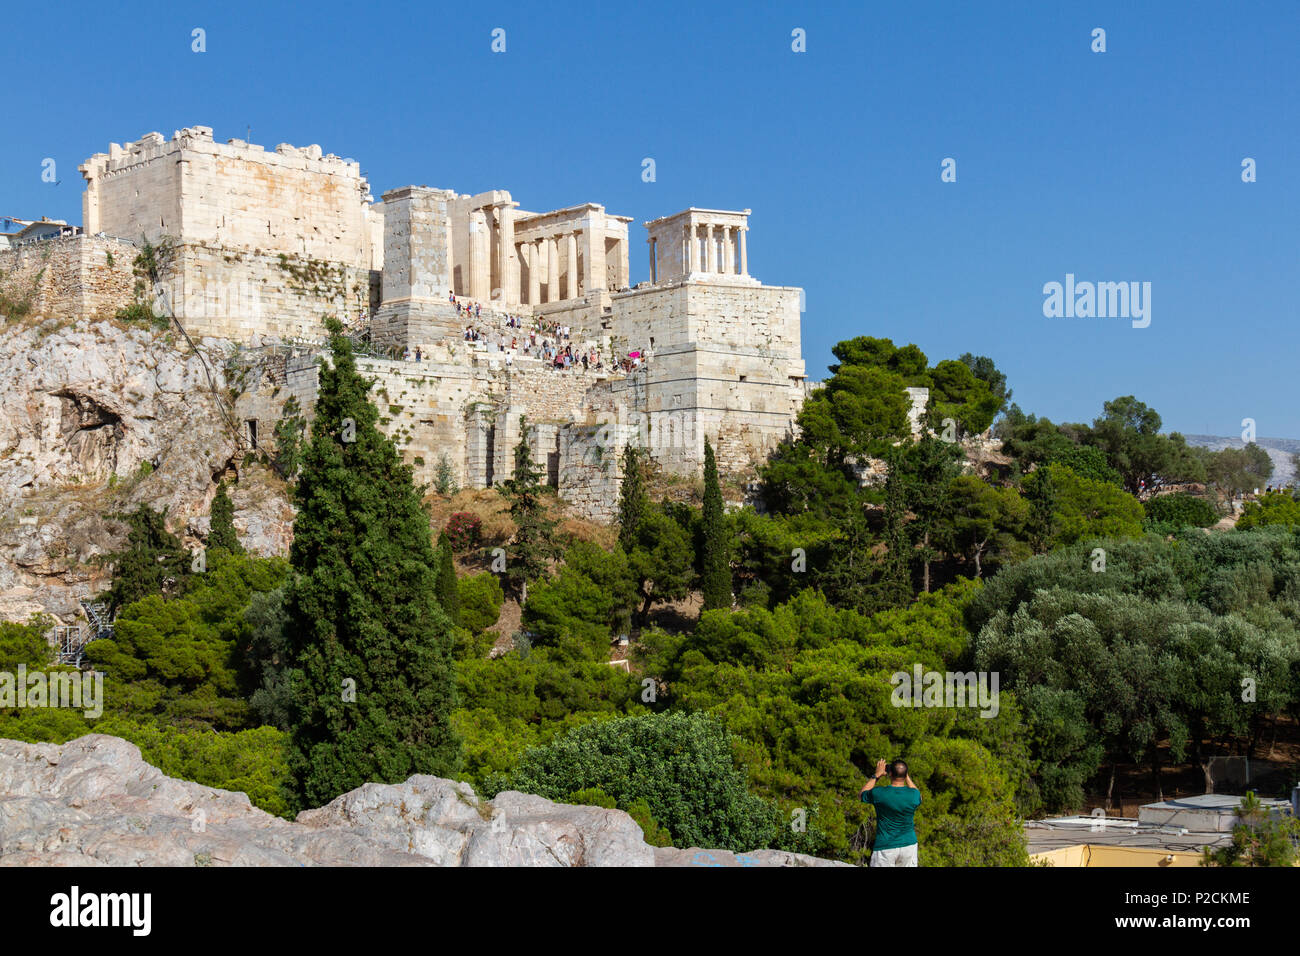 Tourist taking a photo of the Acropolis of Athens, Greece from a rocky hill across the Acropolis rock - Stock Image